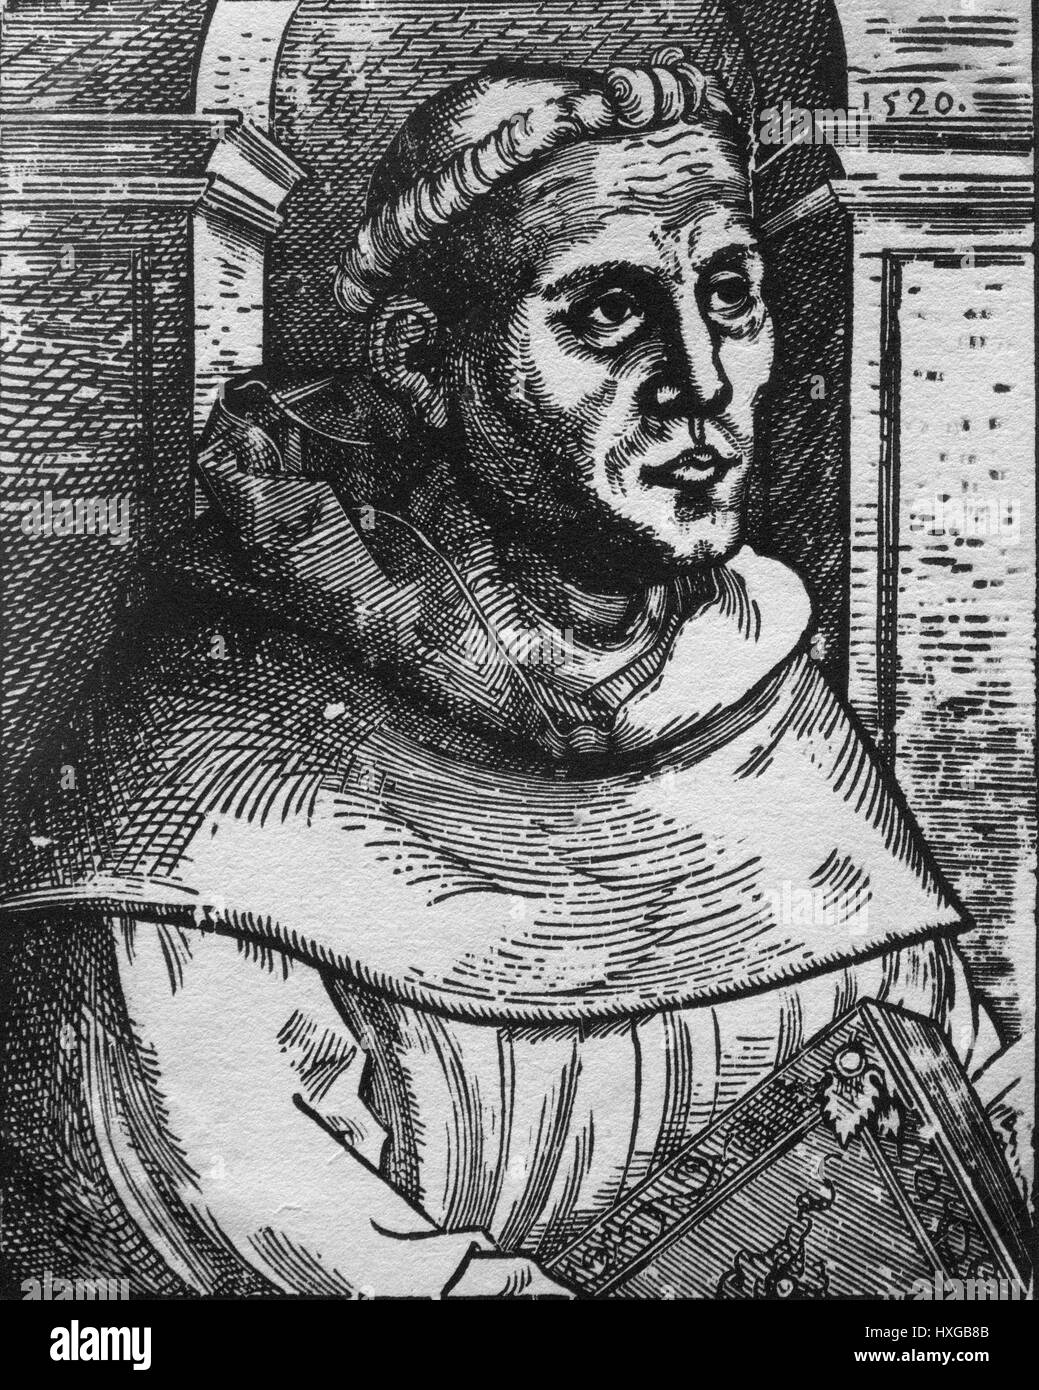 Lucas Cranach the Elder (1472-1553), Martin Luther as an Augustinian monk, (1483-1546). Woodcut, Wittenberg 1520. - Stock Image